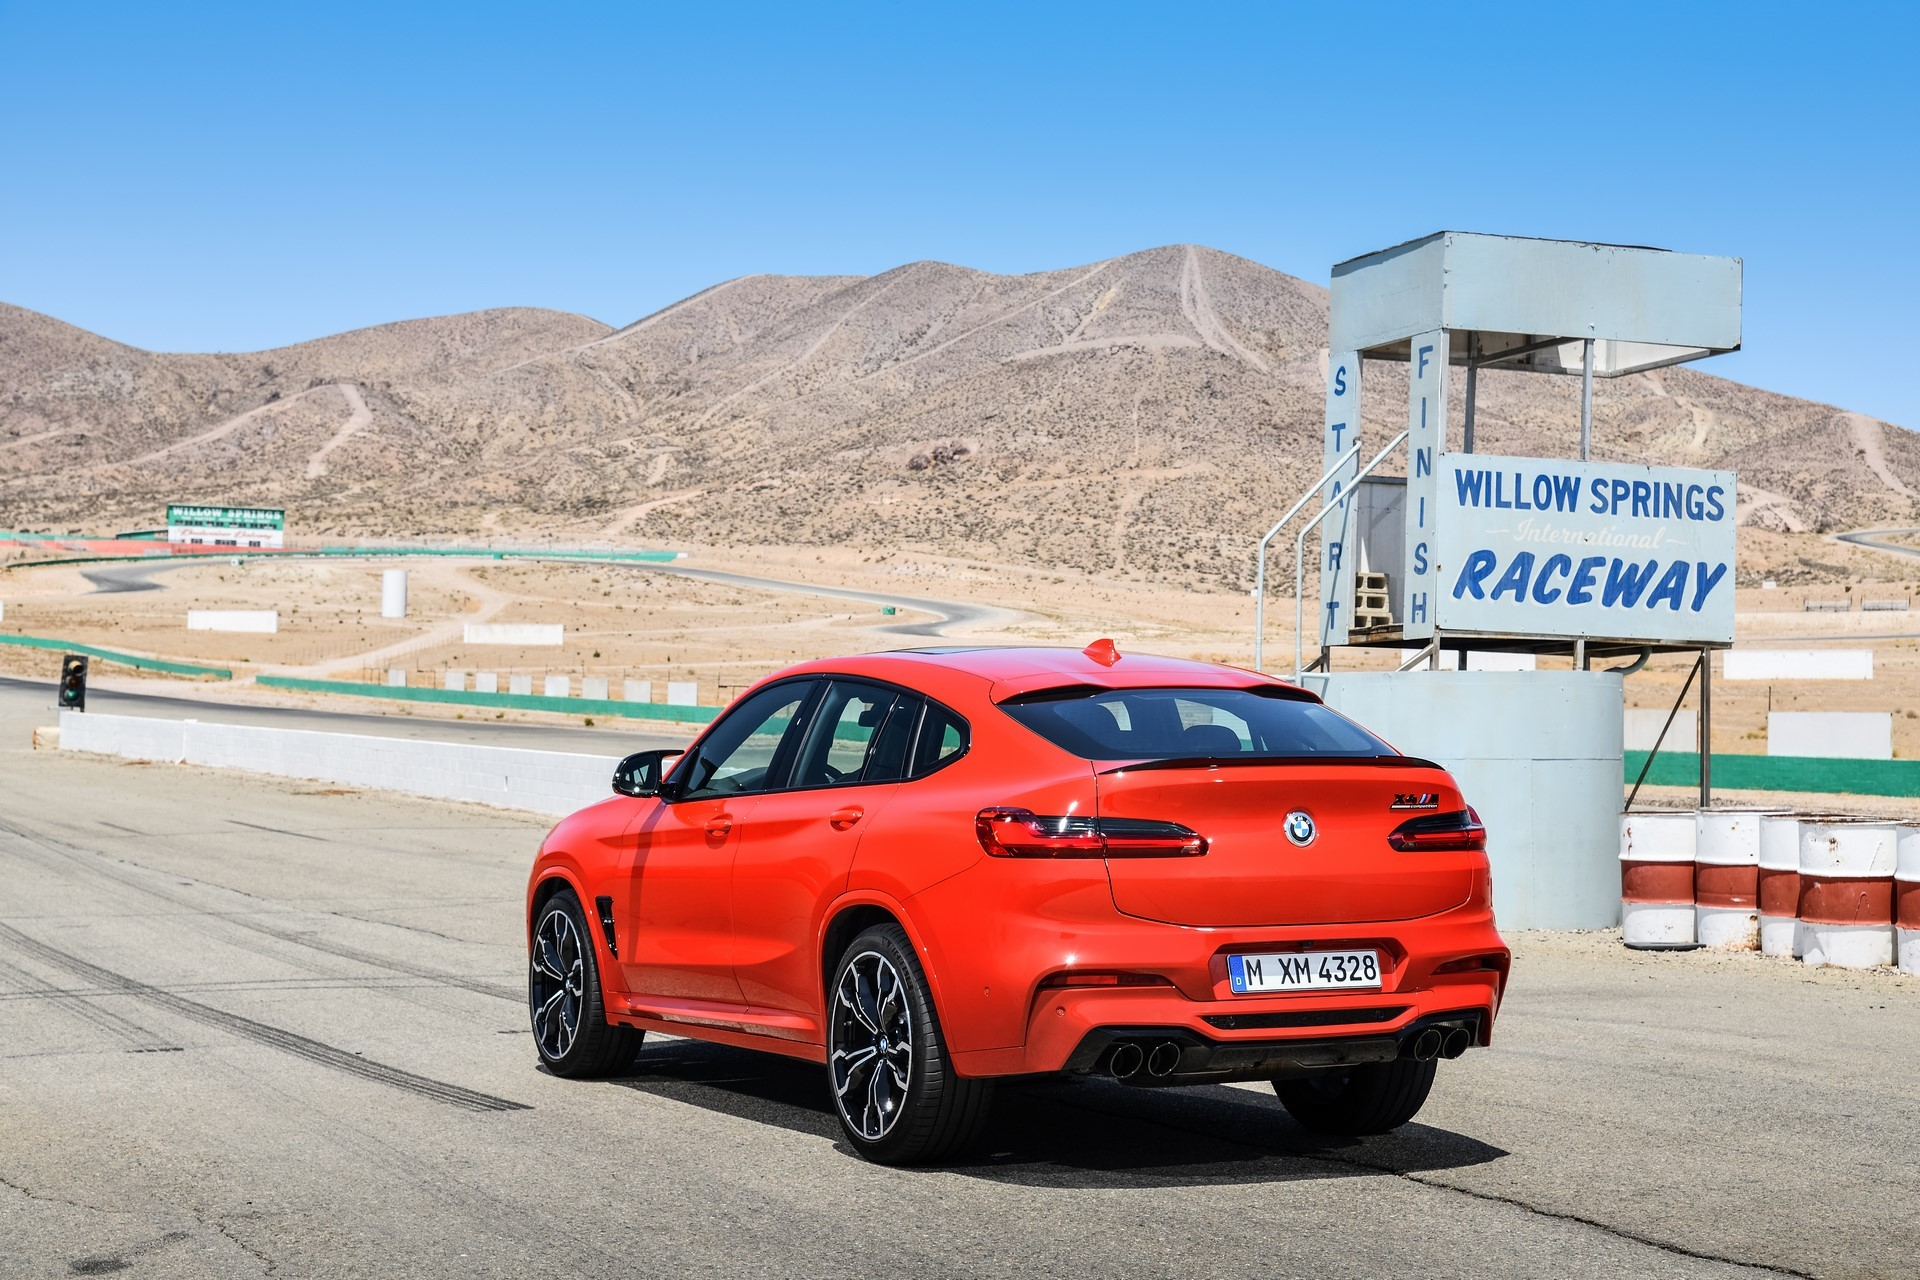 BMW X3 M and X4 M 2019 (73)